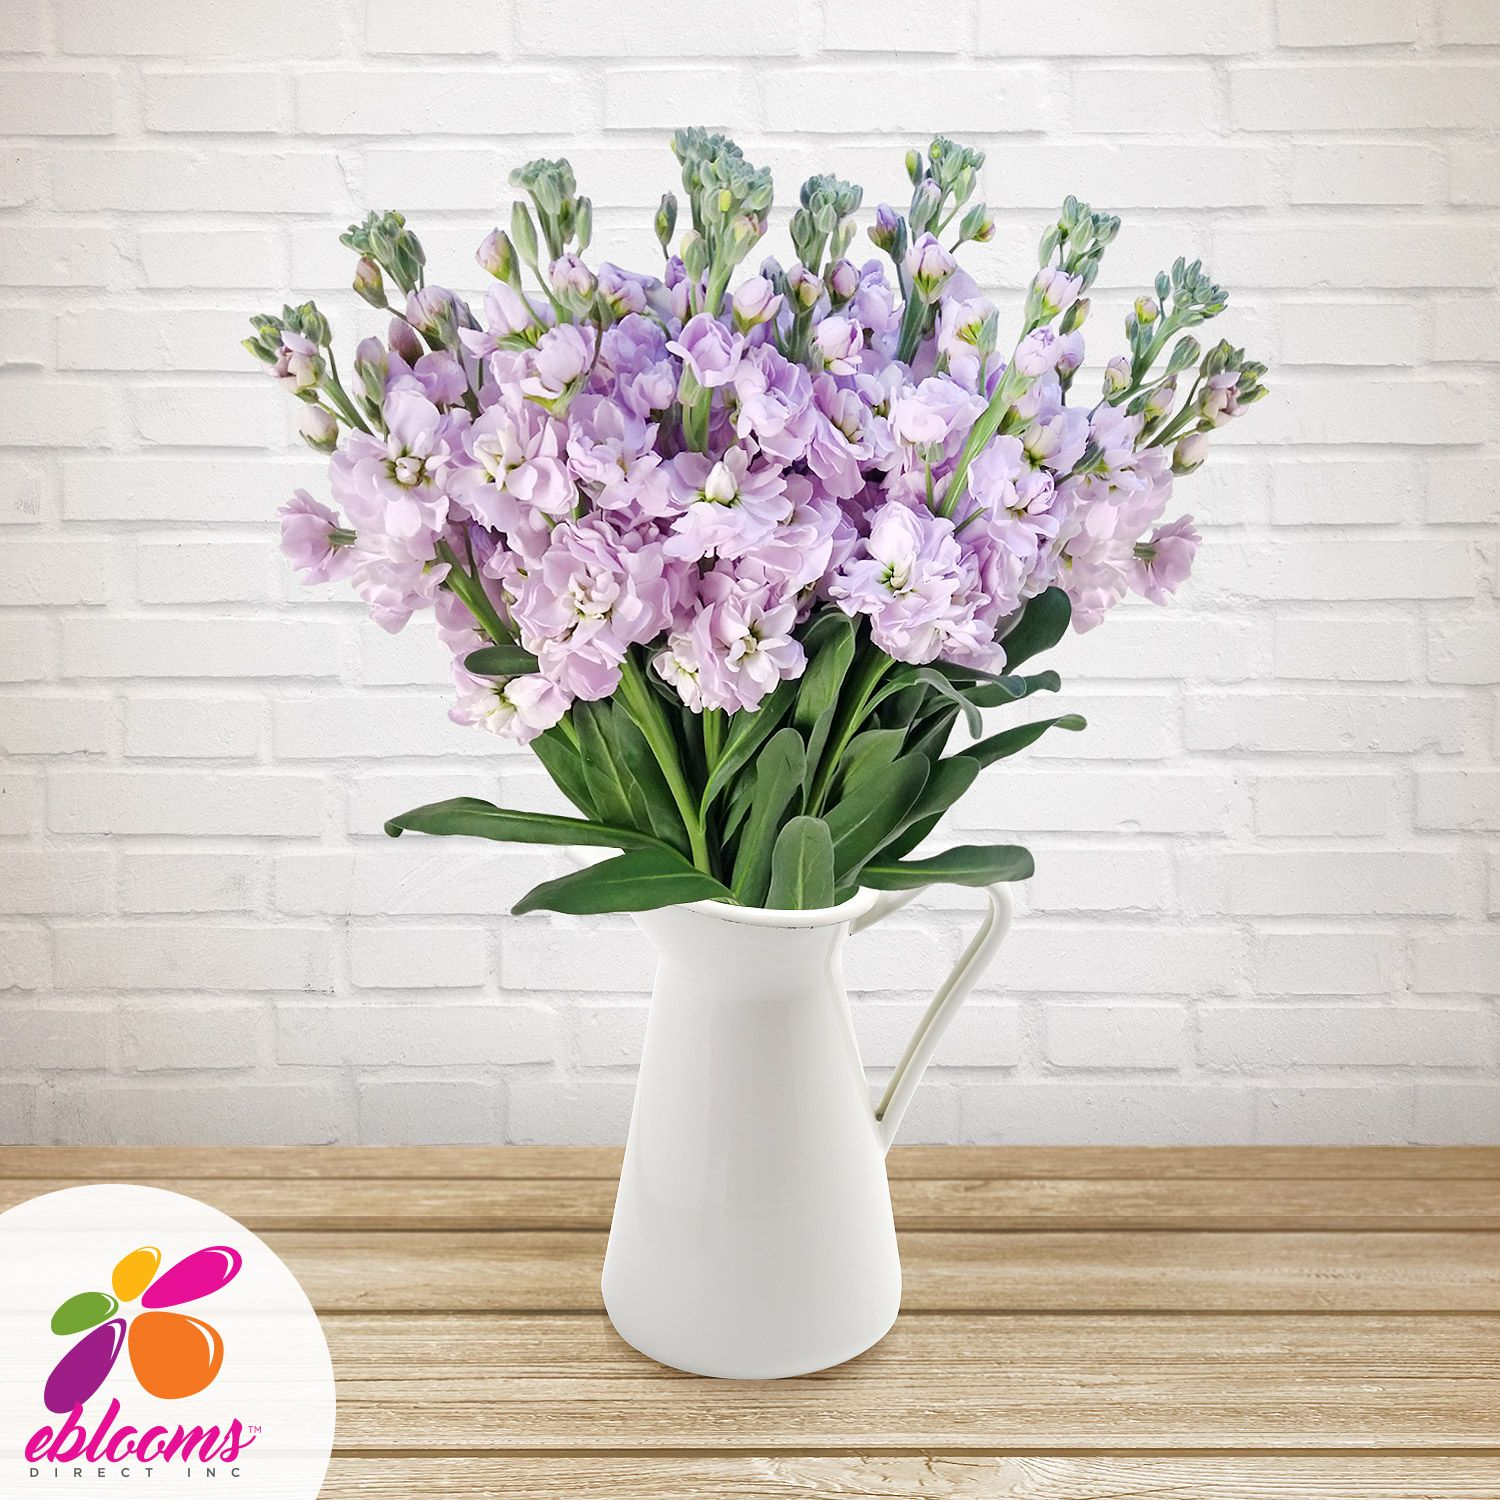 Stock Flowers Pack 80 Stems More Colors Available Ebloomsdirect Flowers Bouquet Gift Amazing Flowers Lavender Flowers